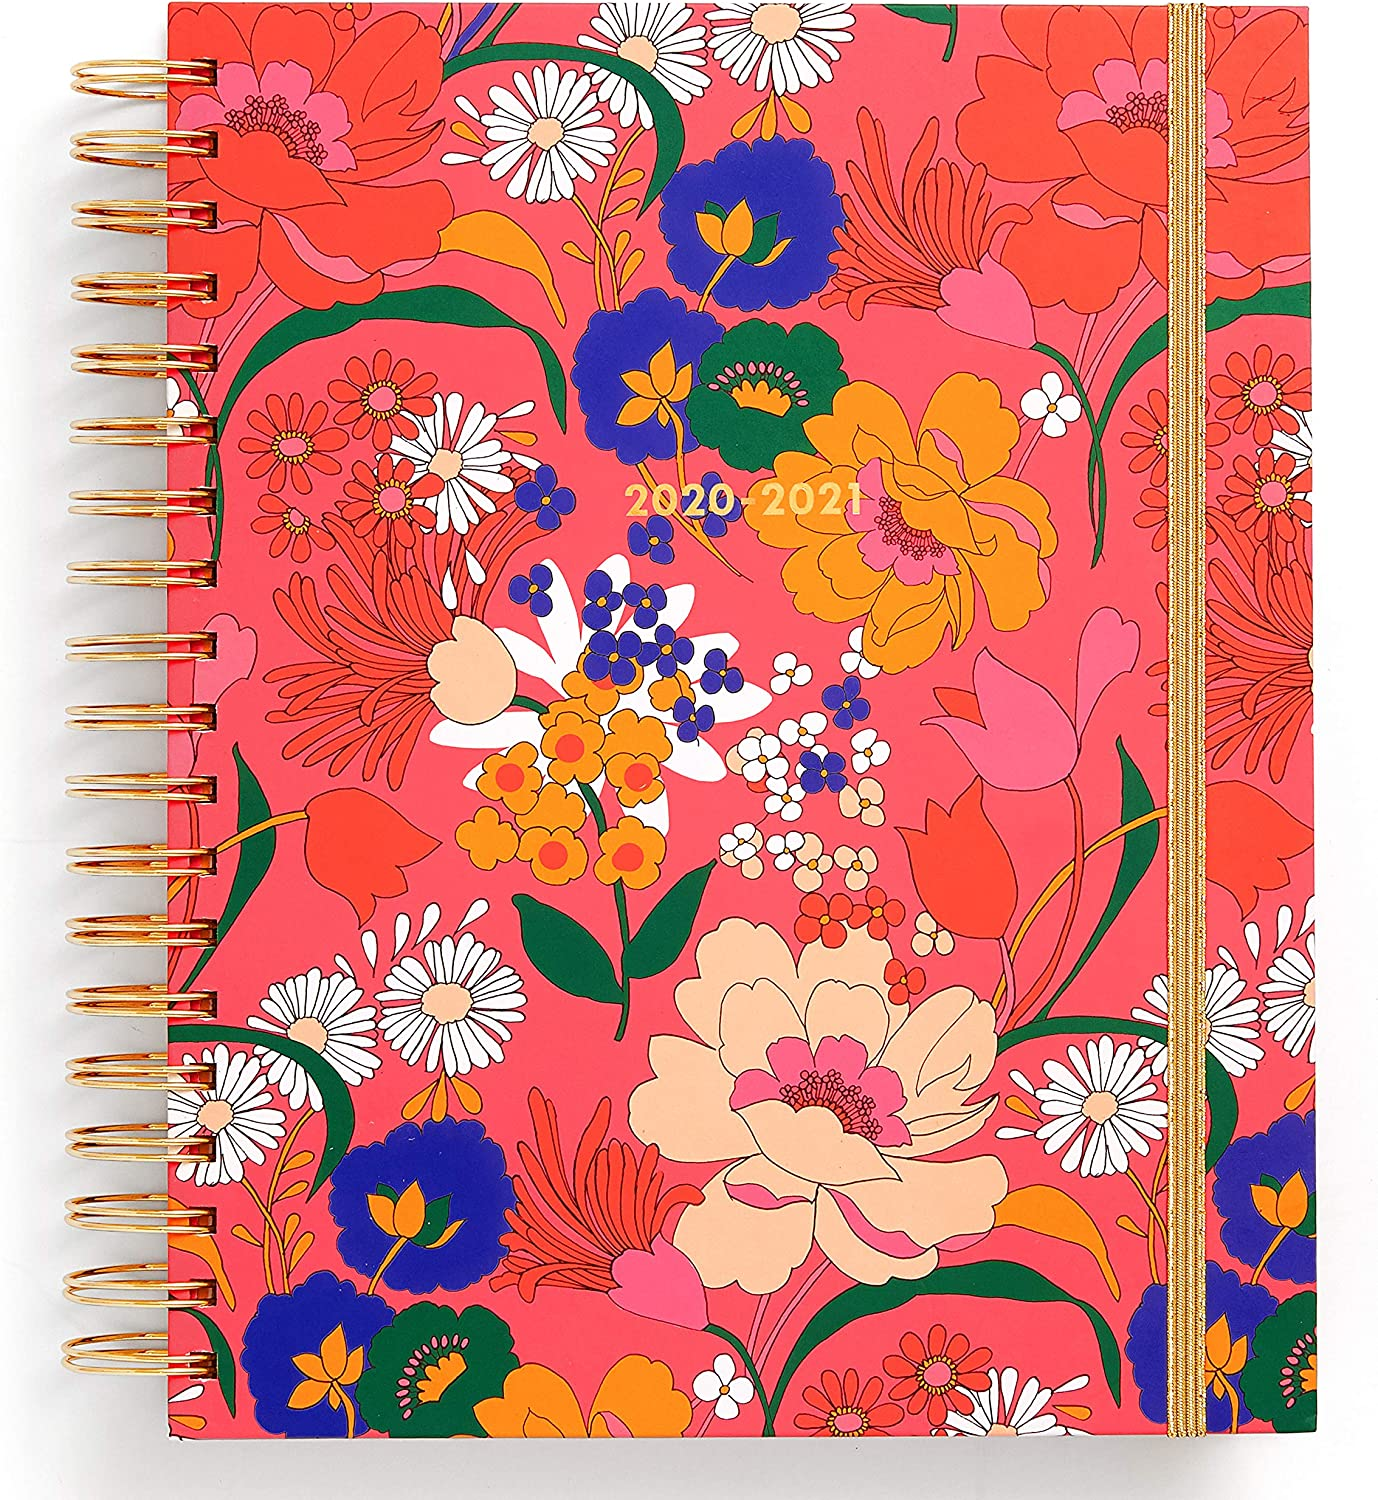 Ban.do 17 Month 2020-2021 Large Daily Planner with Weekly & Monthly Views, Dated August 2020 - December 2021, Hardcover Self-Care Planner with Stickers, Goal/Reflection Pages, Cool Art, Superbloom